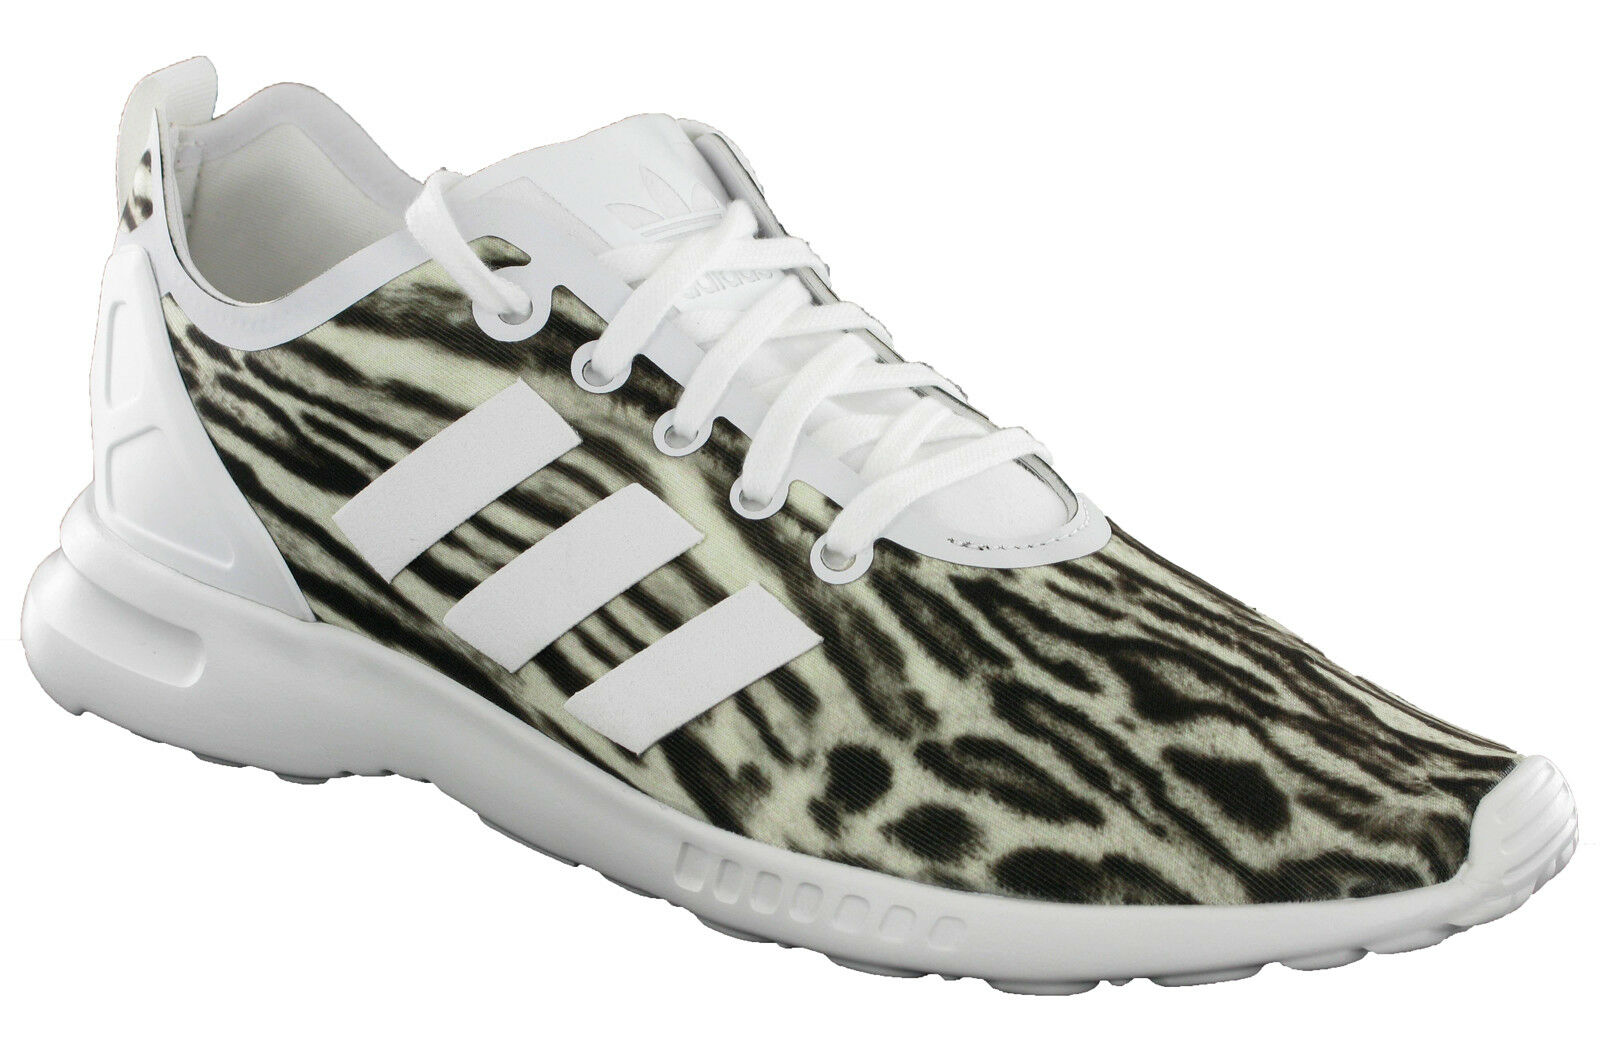 Adidas ZX Flux ADV Smooth Trainers Sports Womens Lace White Zebra AQ5645